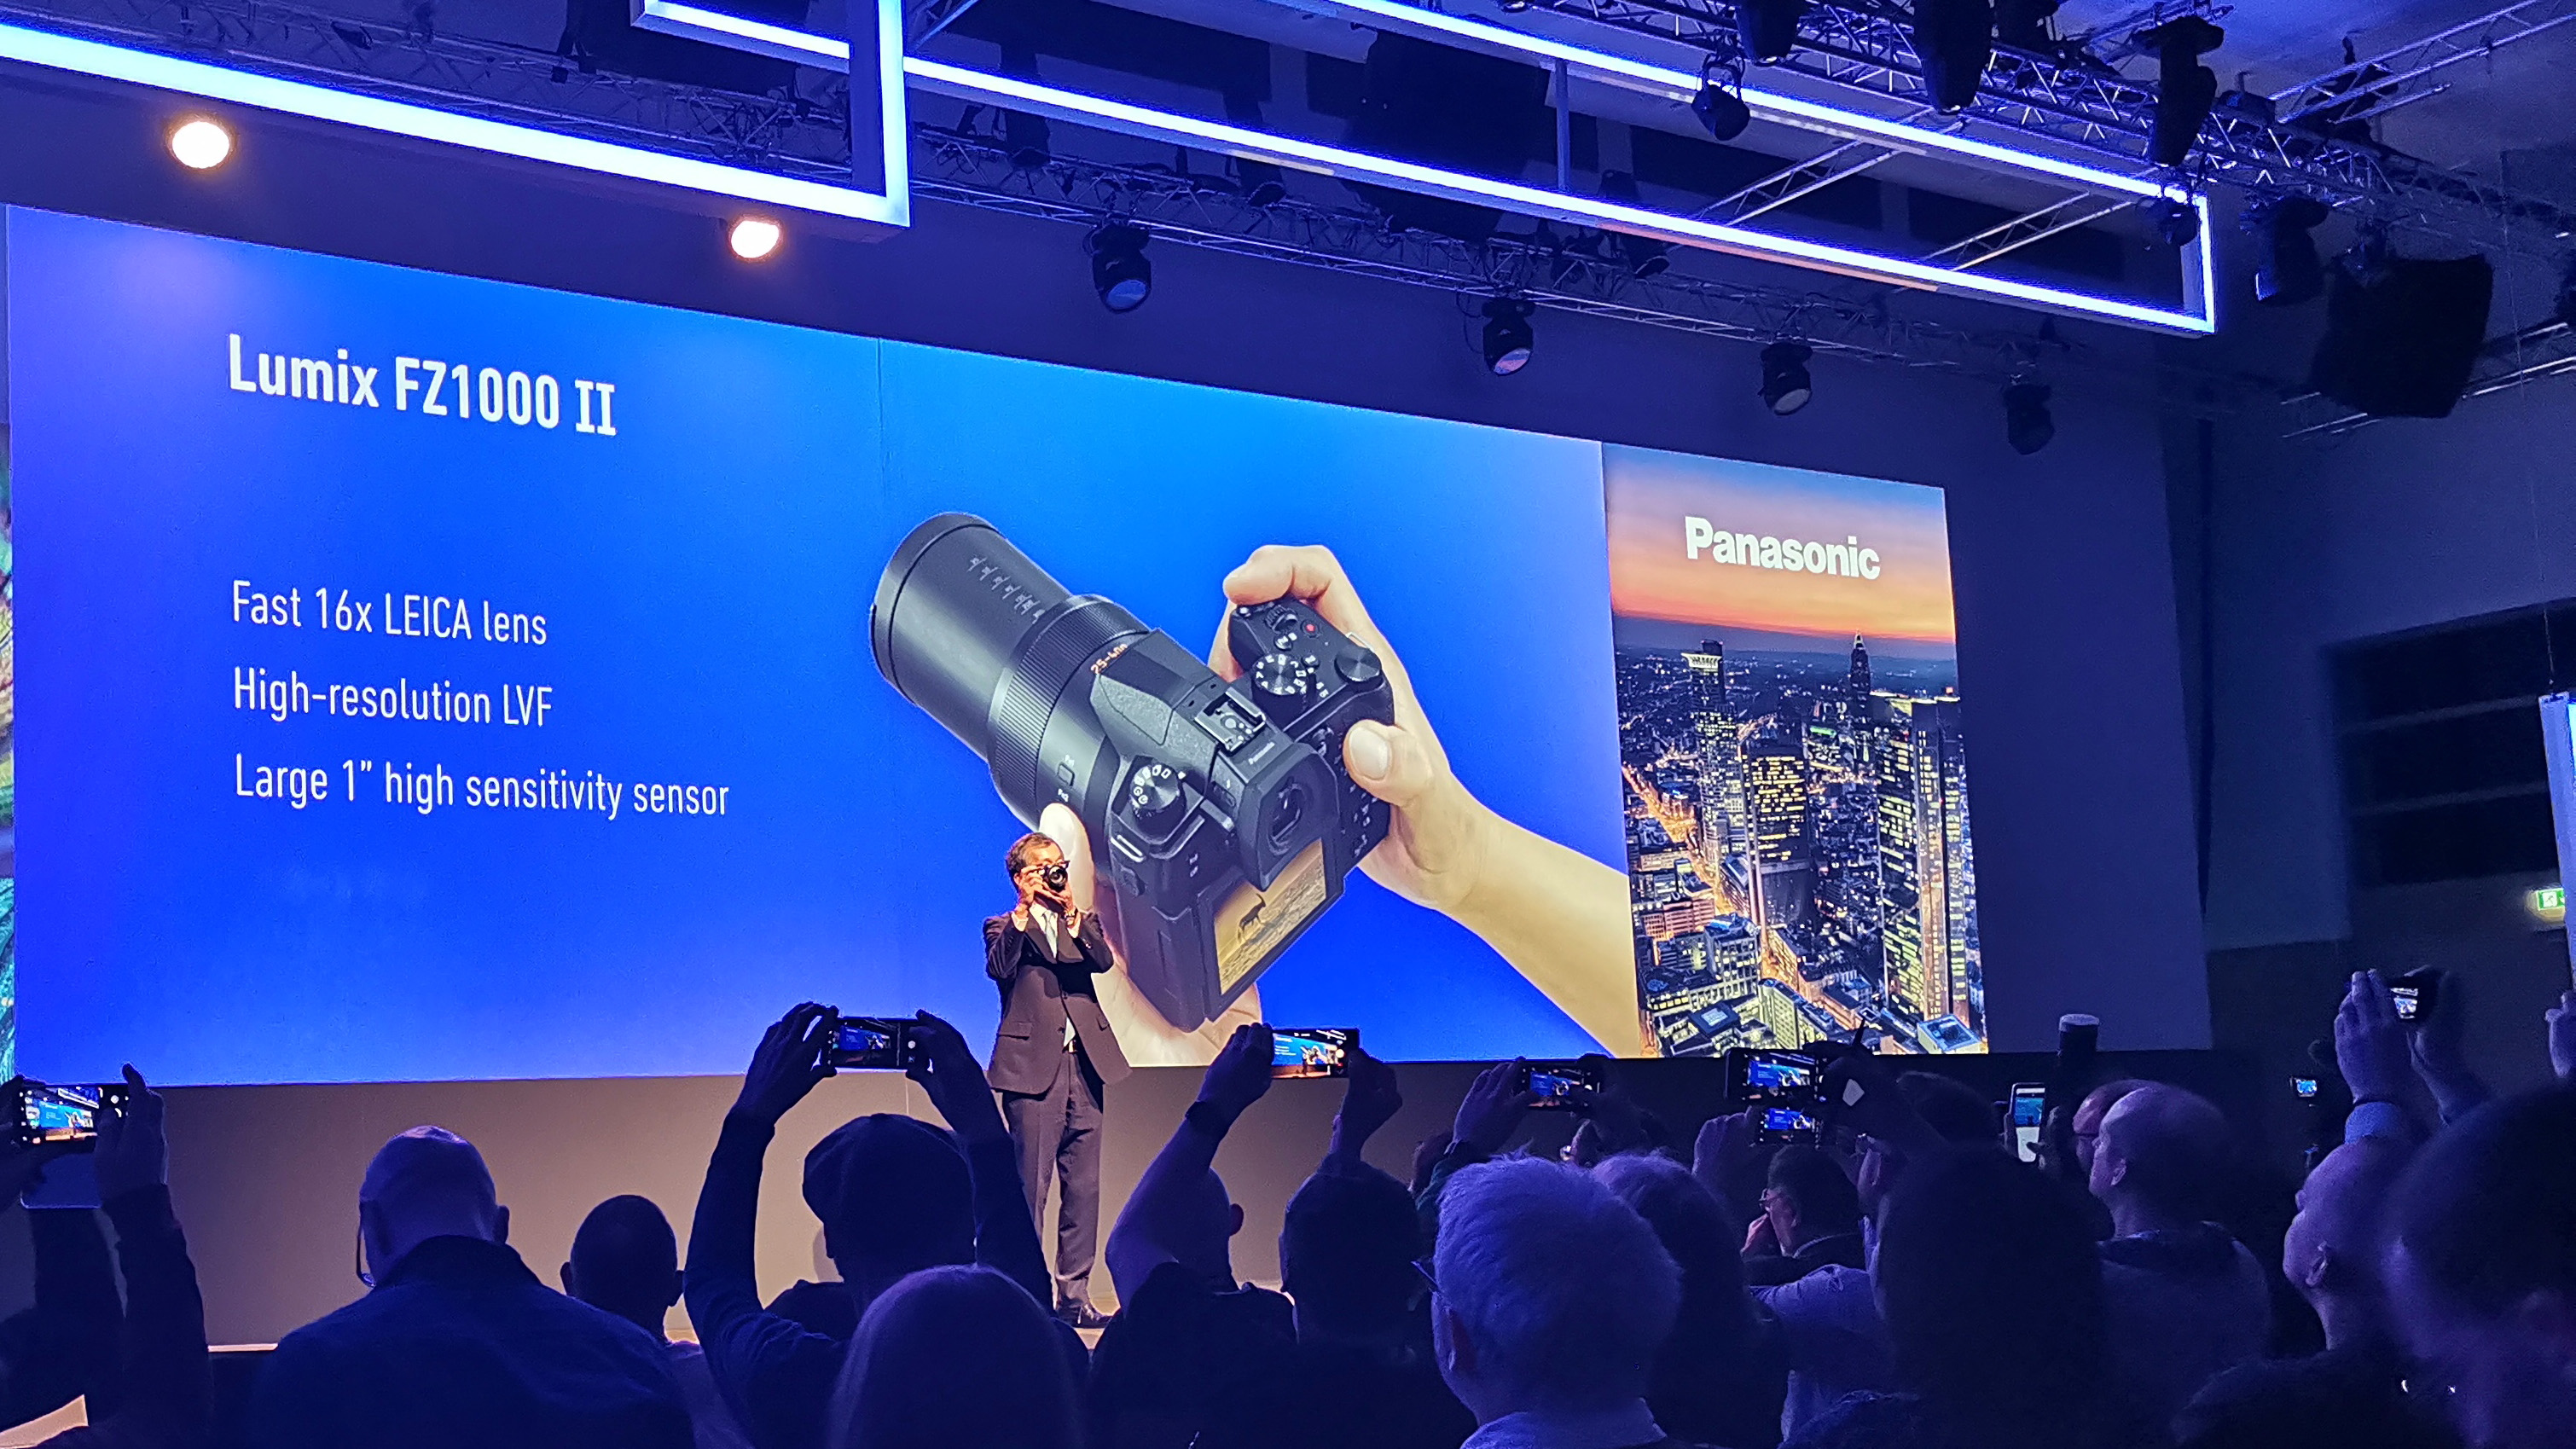 Panasonic Lumix DMC-FZ1000 II announced: same 20.1MP, 4K video, 16x zoom as FZ1000